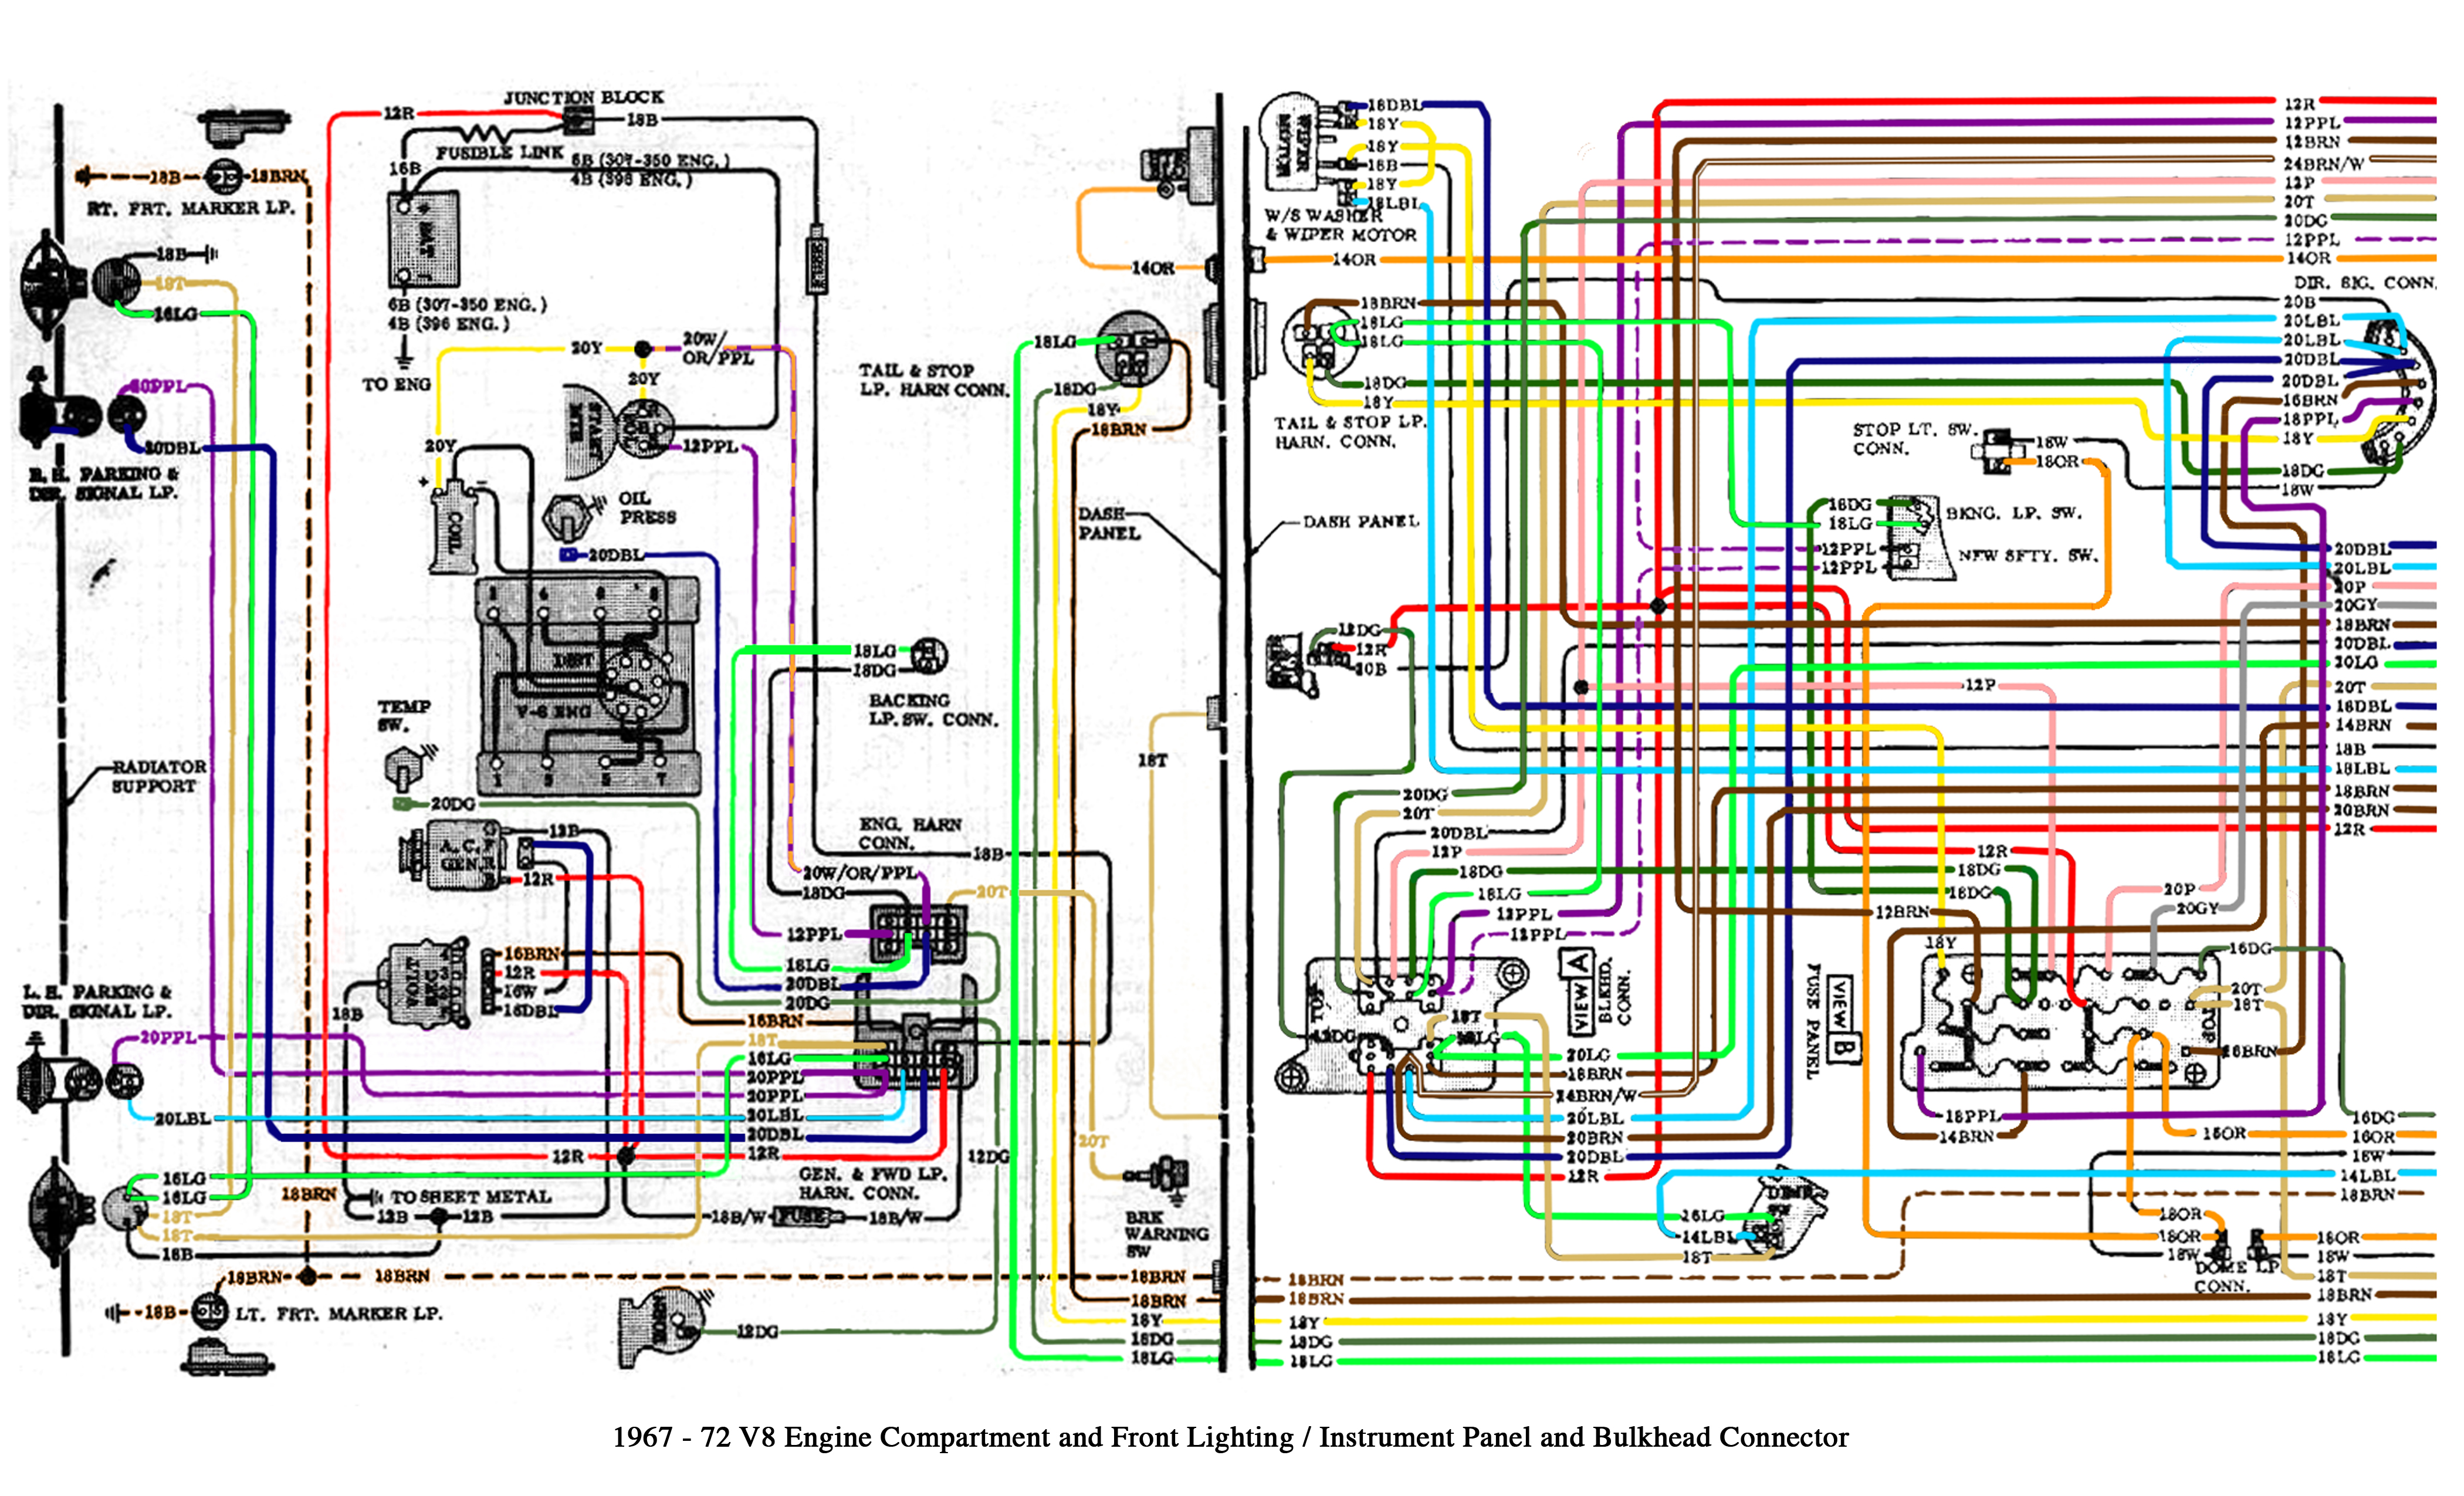 Steering Column Wiring Diagram | Index listing of wiring diagrams on turn signal wiring diagram, chevrolet truck steering column diagram, chevy turn signal diagram, gm steering column parts diagram, chevrolet steering column connectors, 85 suburban steering column diagram, chevrolet steering column exploded view, chevrolet tilt steering column diagram,